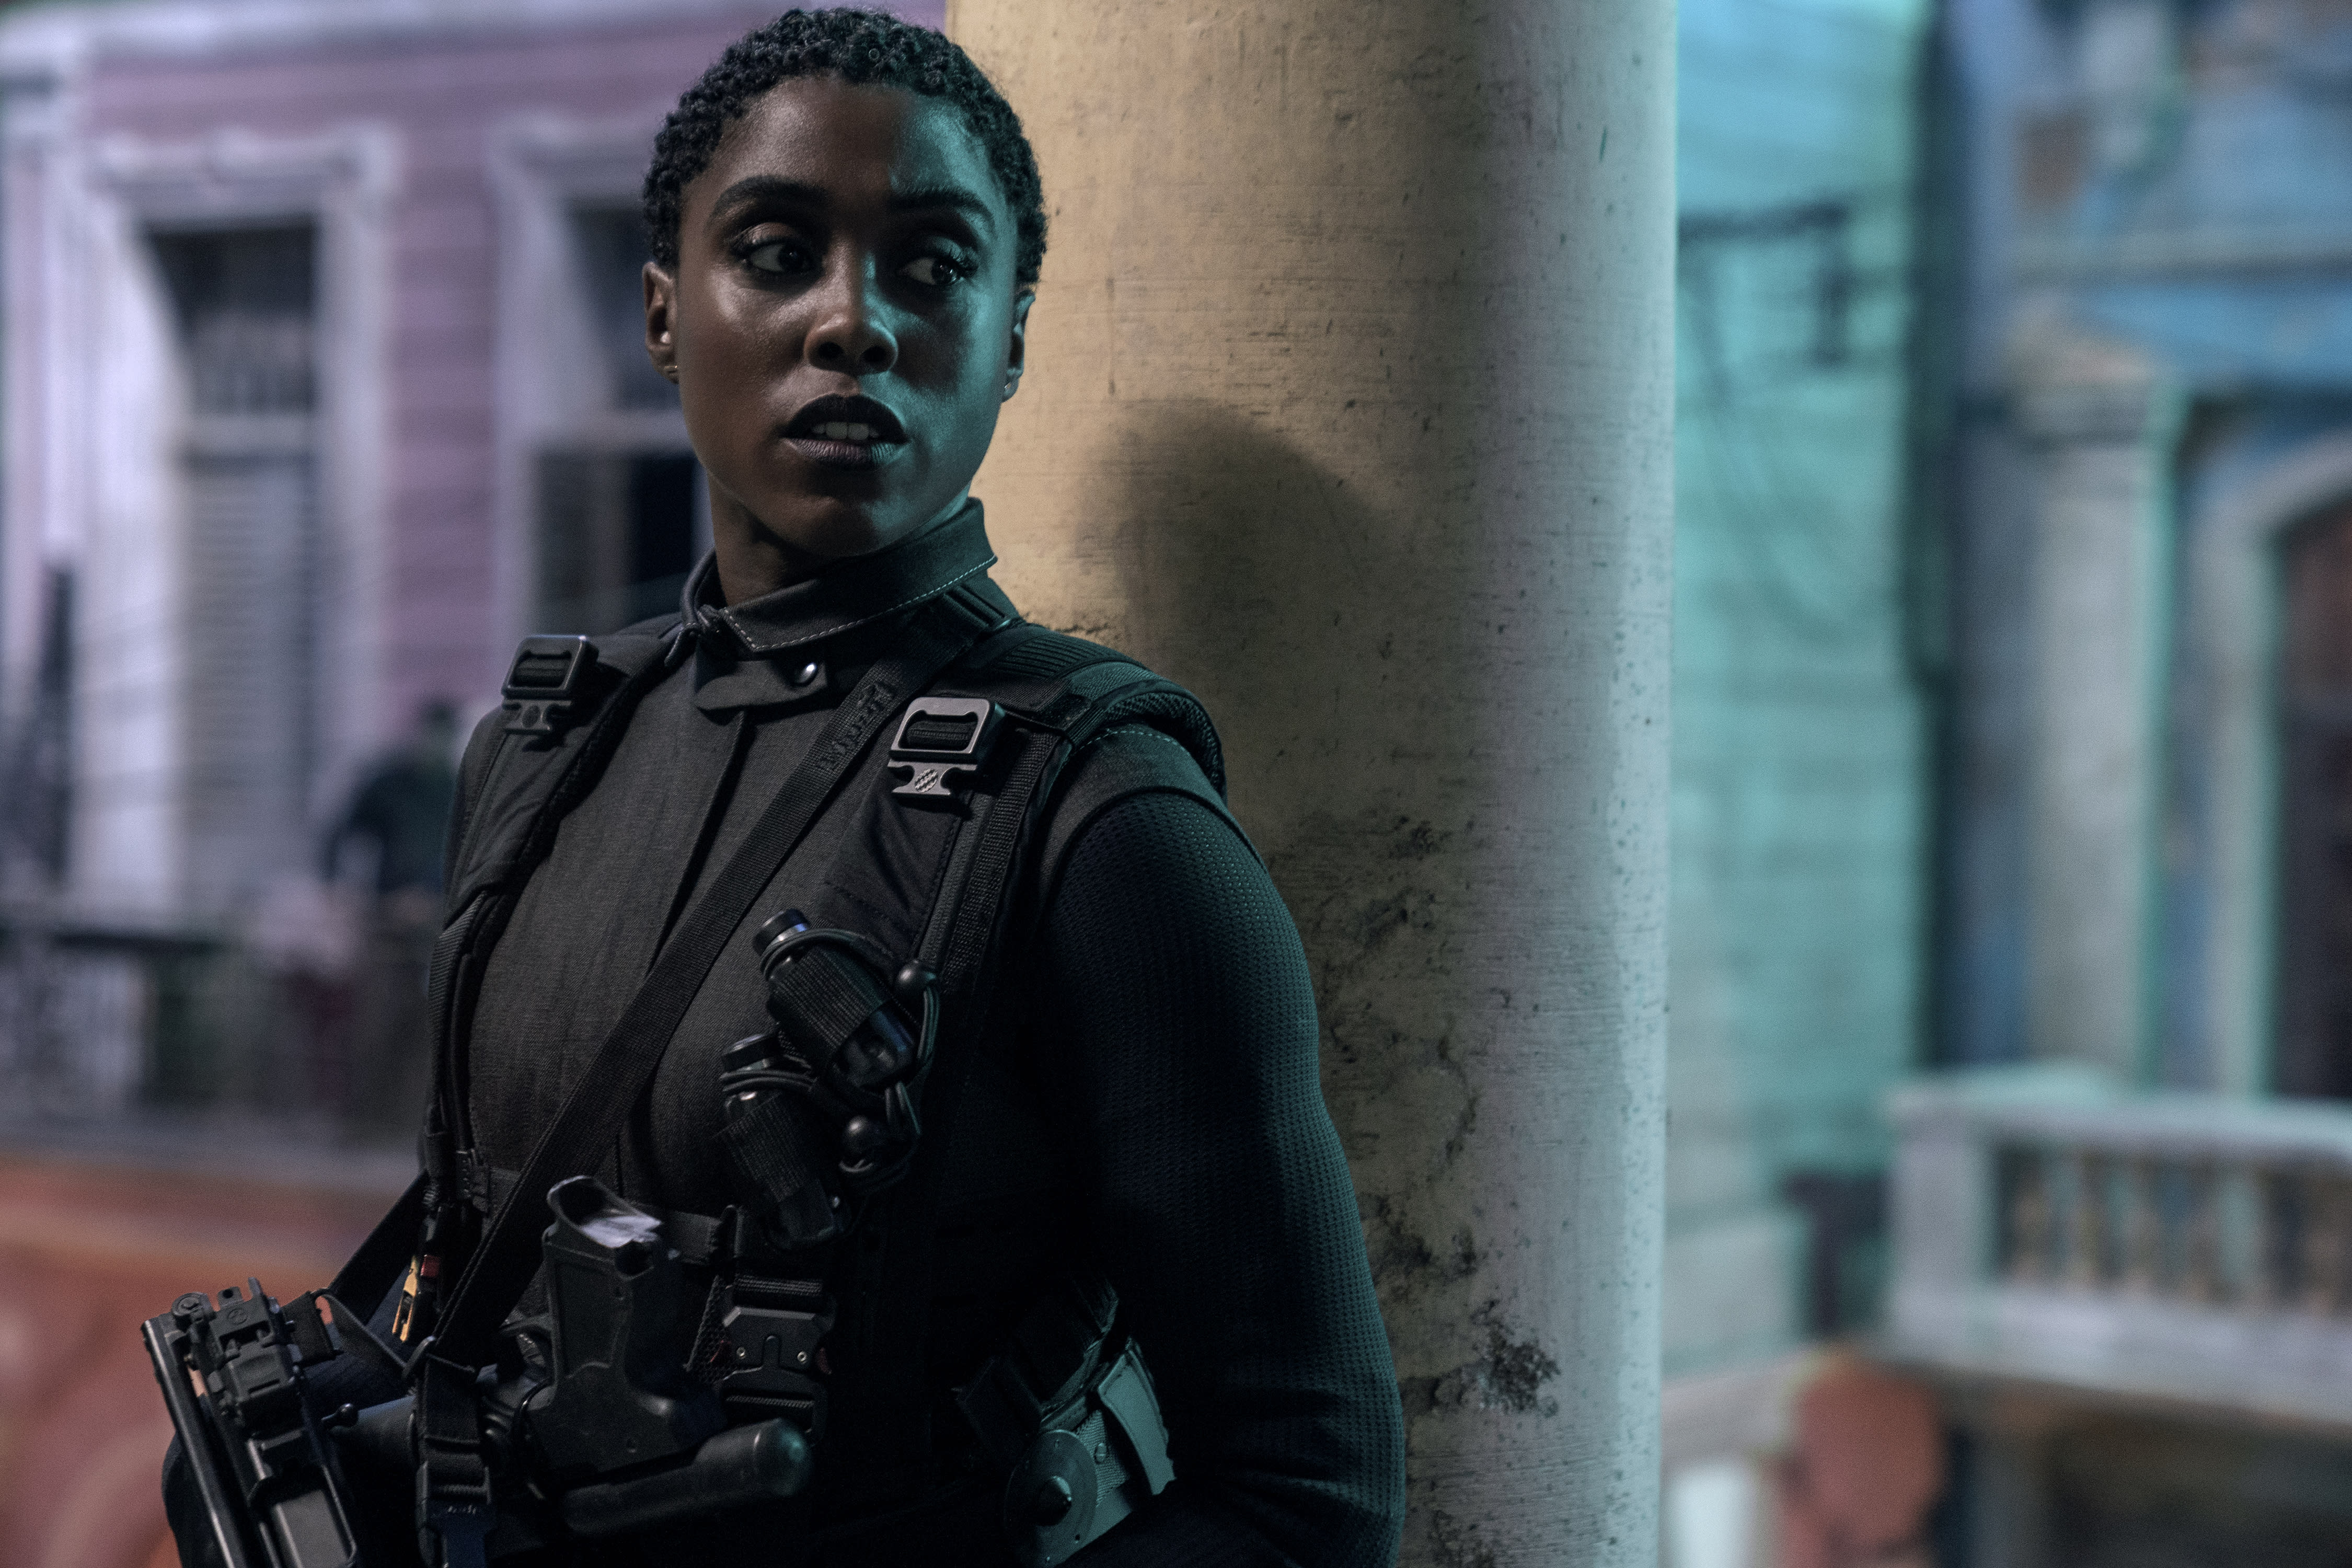 Lashana Lynch plays Nomi, a new MI6 agent in 'No Time to Die' (Photo: Nicola Dove, 2019 DANJAQ, LLC AND MGM.)